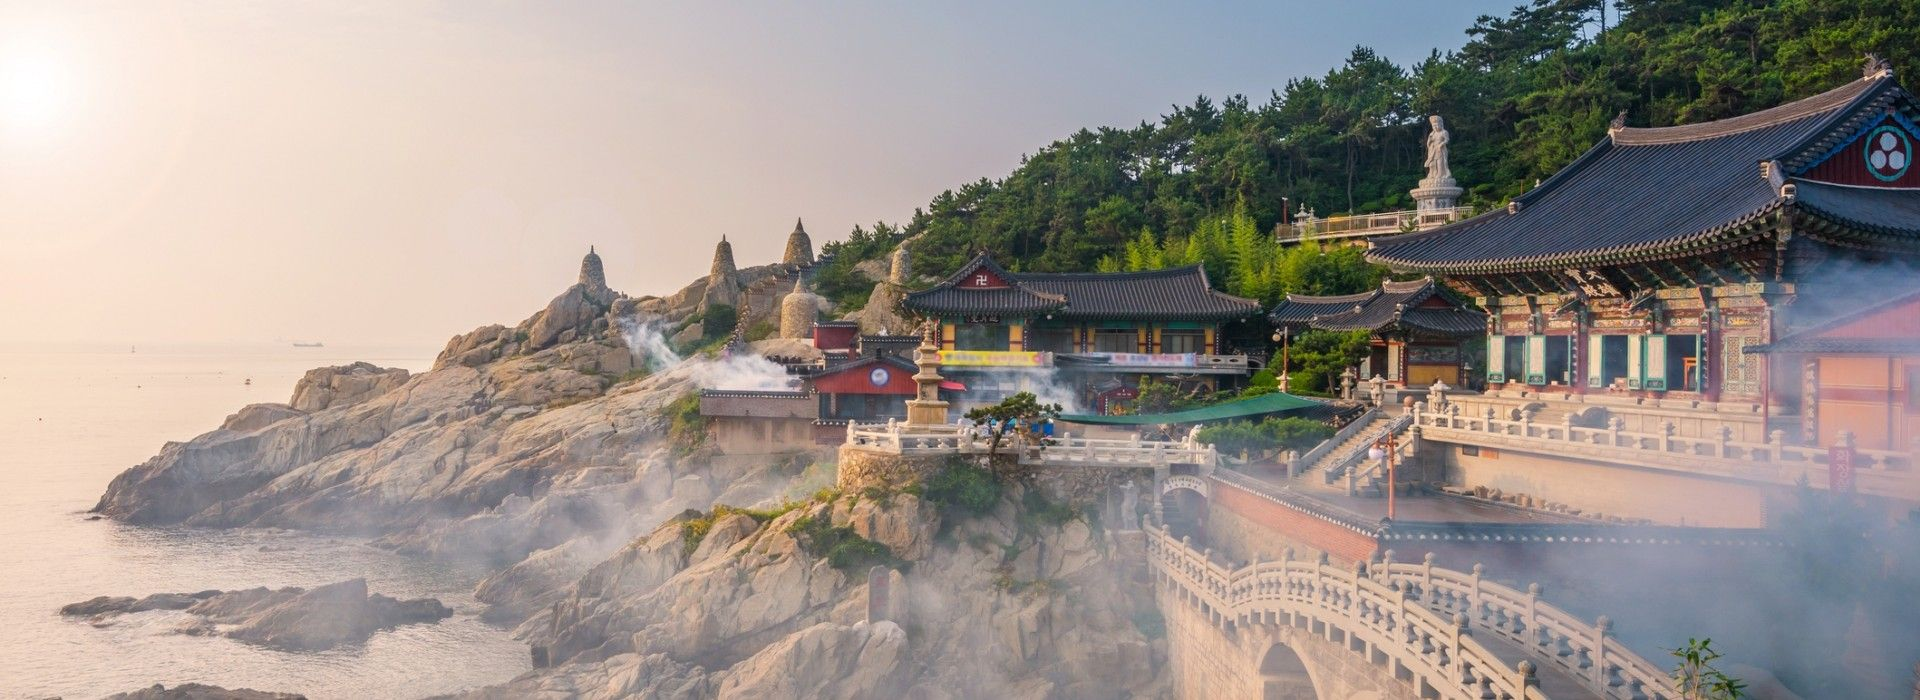 Cultural, religious and historic sites Tours in Seoul